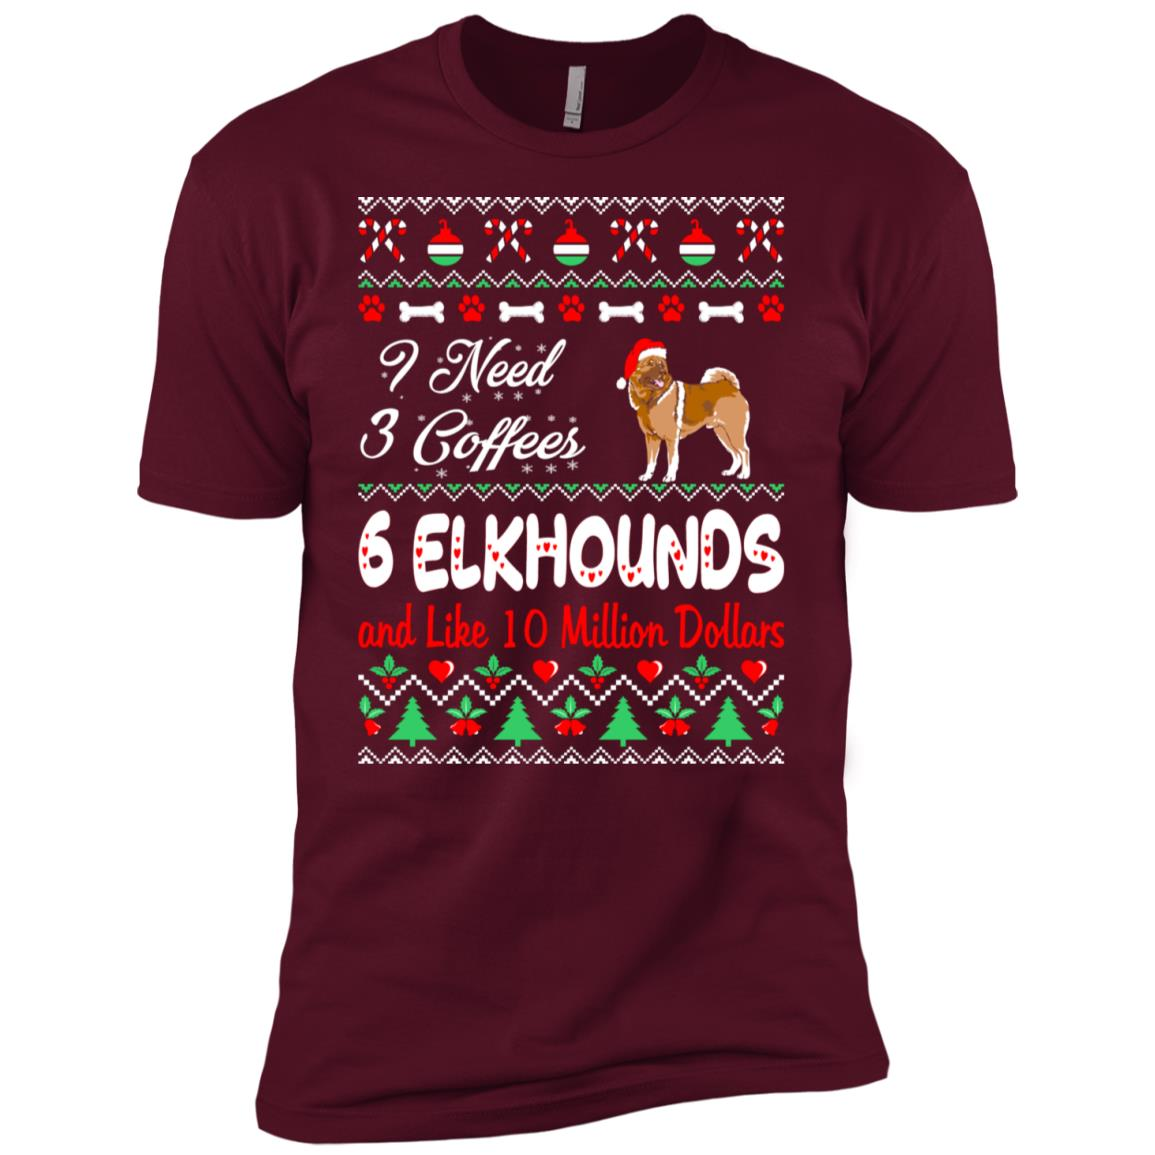 Need 3 Coffees 6 Elkhounds Christmas Ugly Sweater-1 Men Short Sleeve T-Shirt